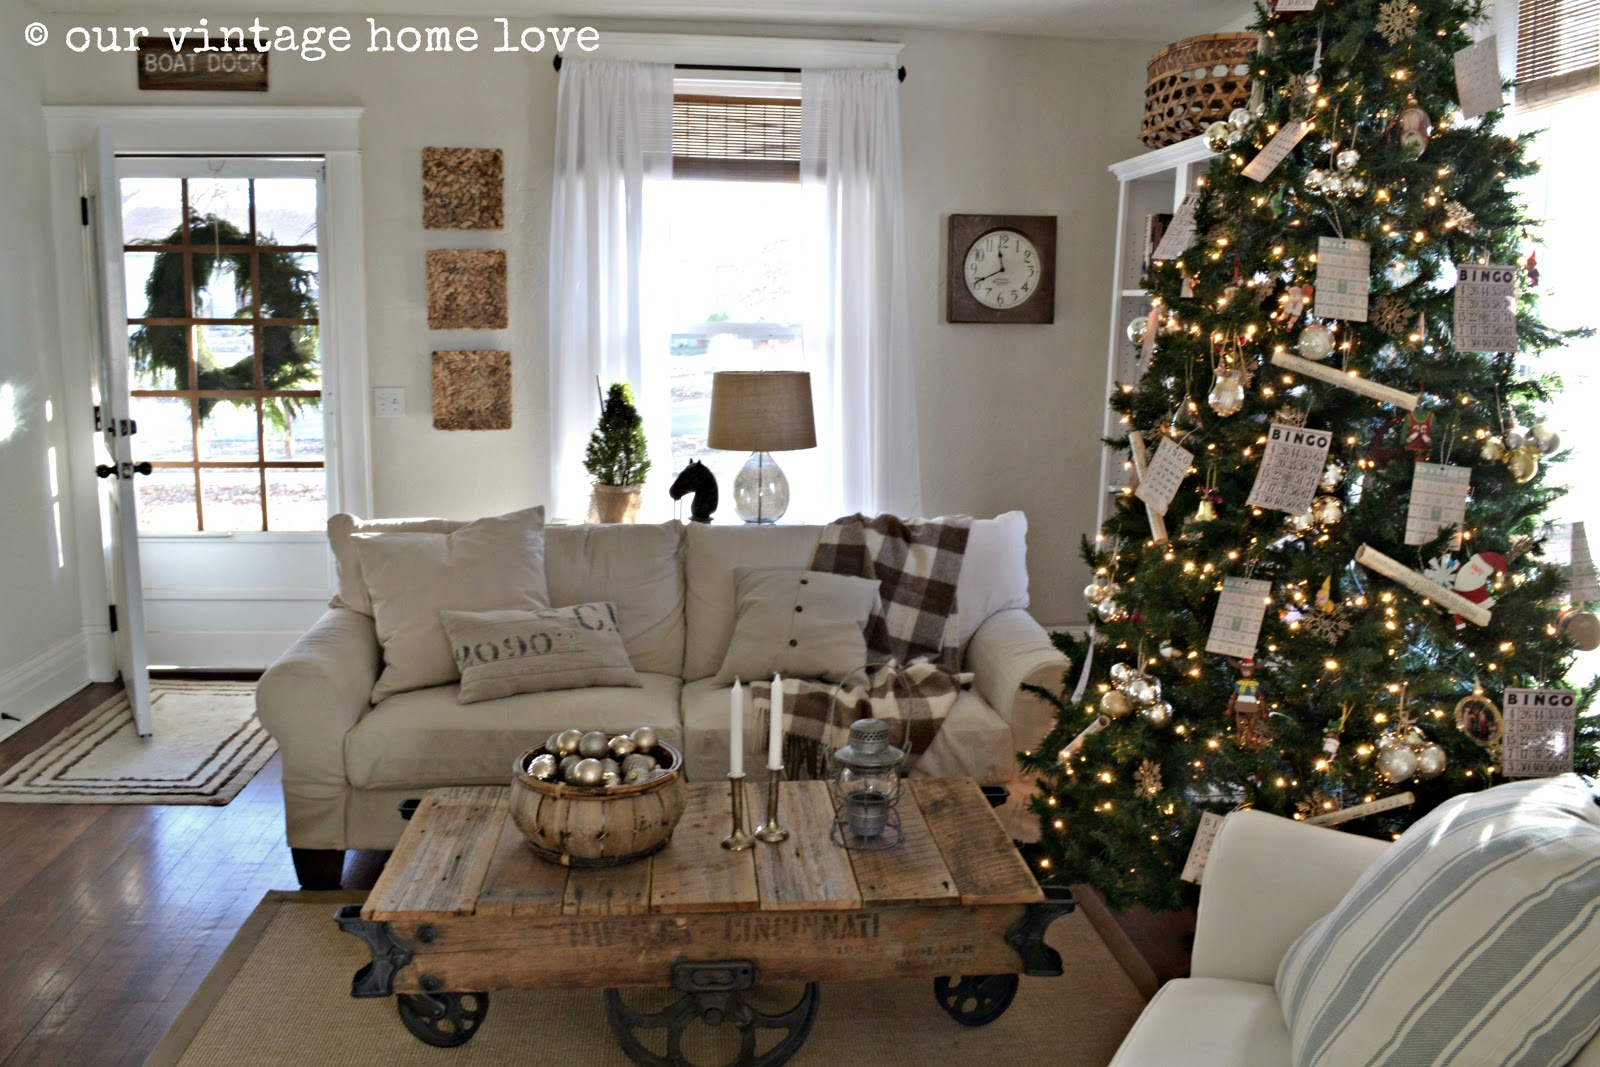 Our vintage home love 2012 christmas decor ideas for Antique home decoration